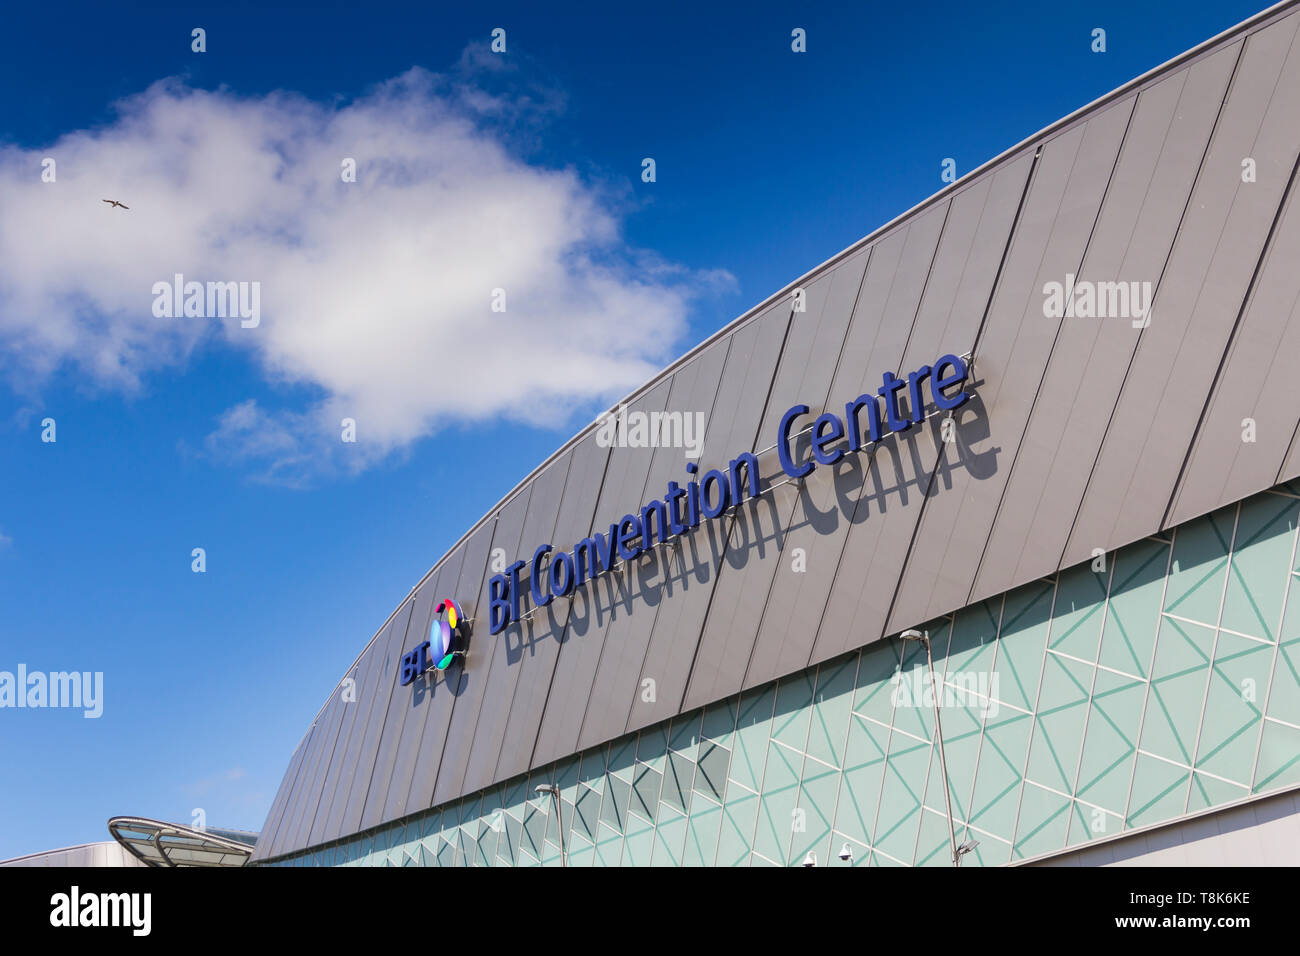 The BT Convention Centre is a sister and interconnected venue with the Liverpool Exhibition Centre on Kings Dock Liverpool waterfront. - Stock Image